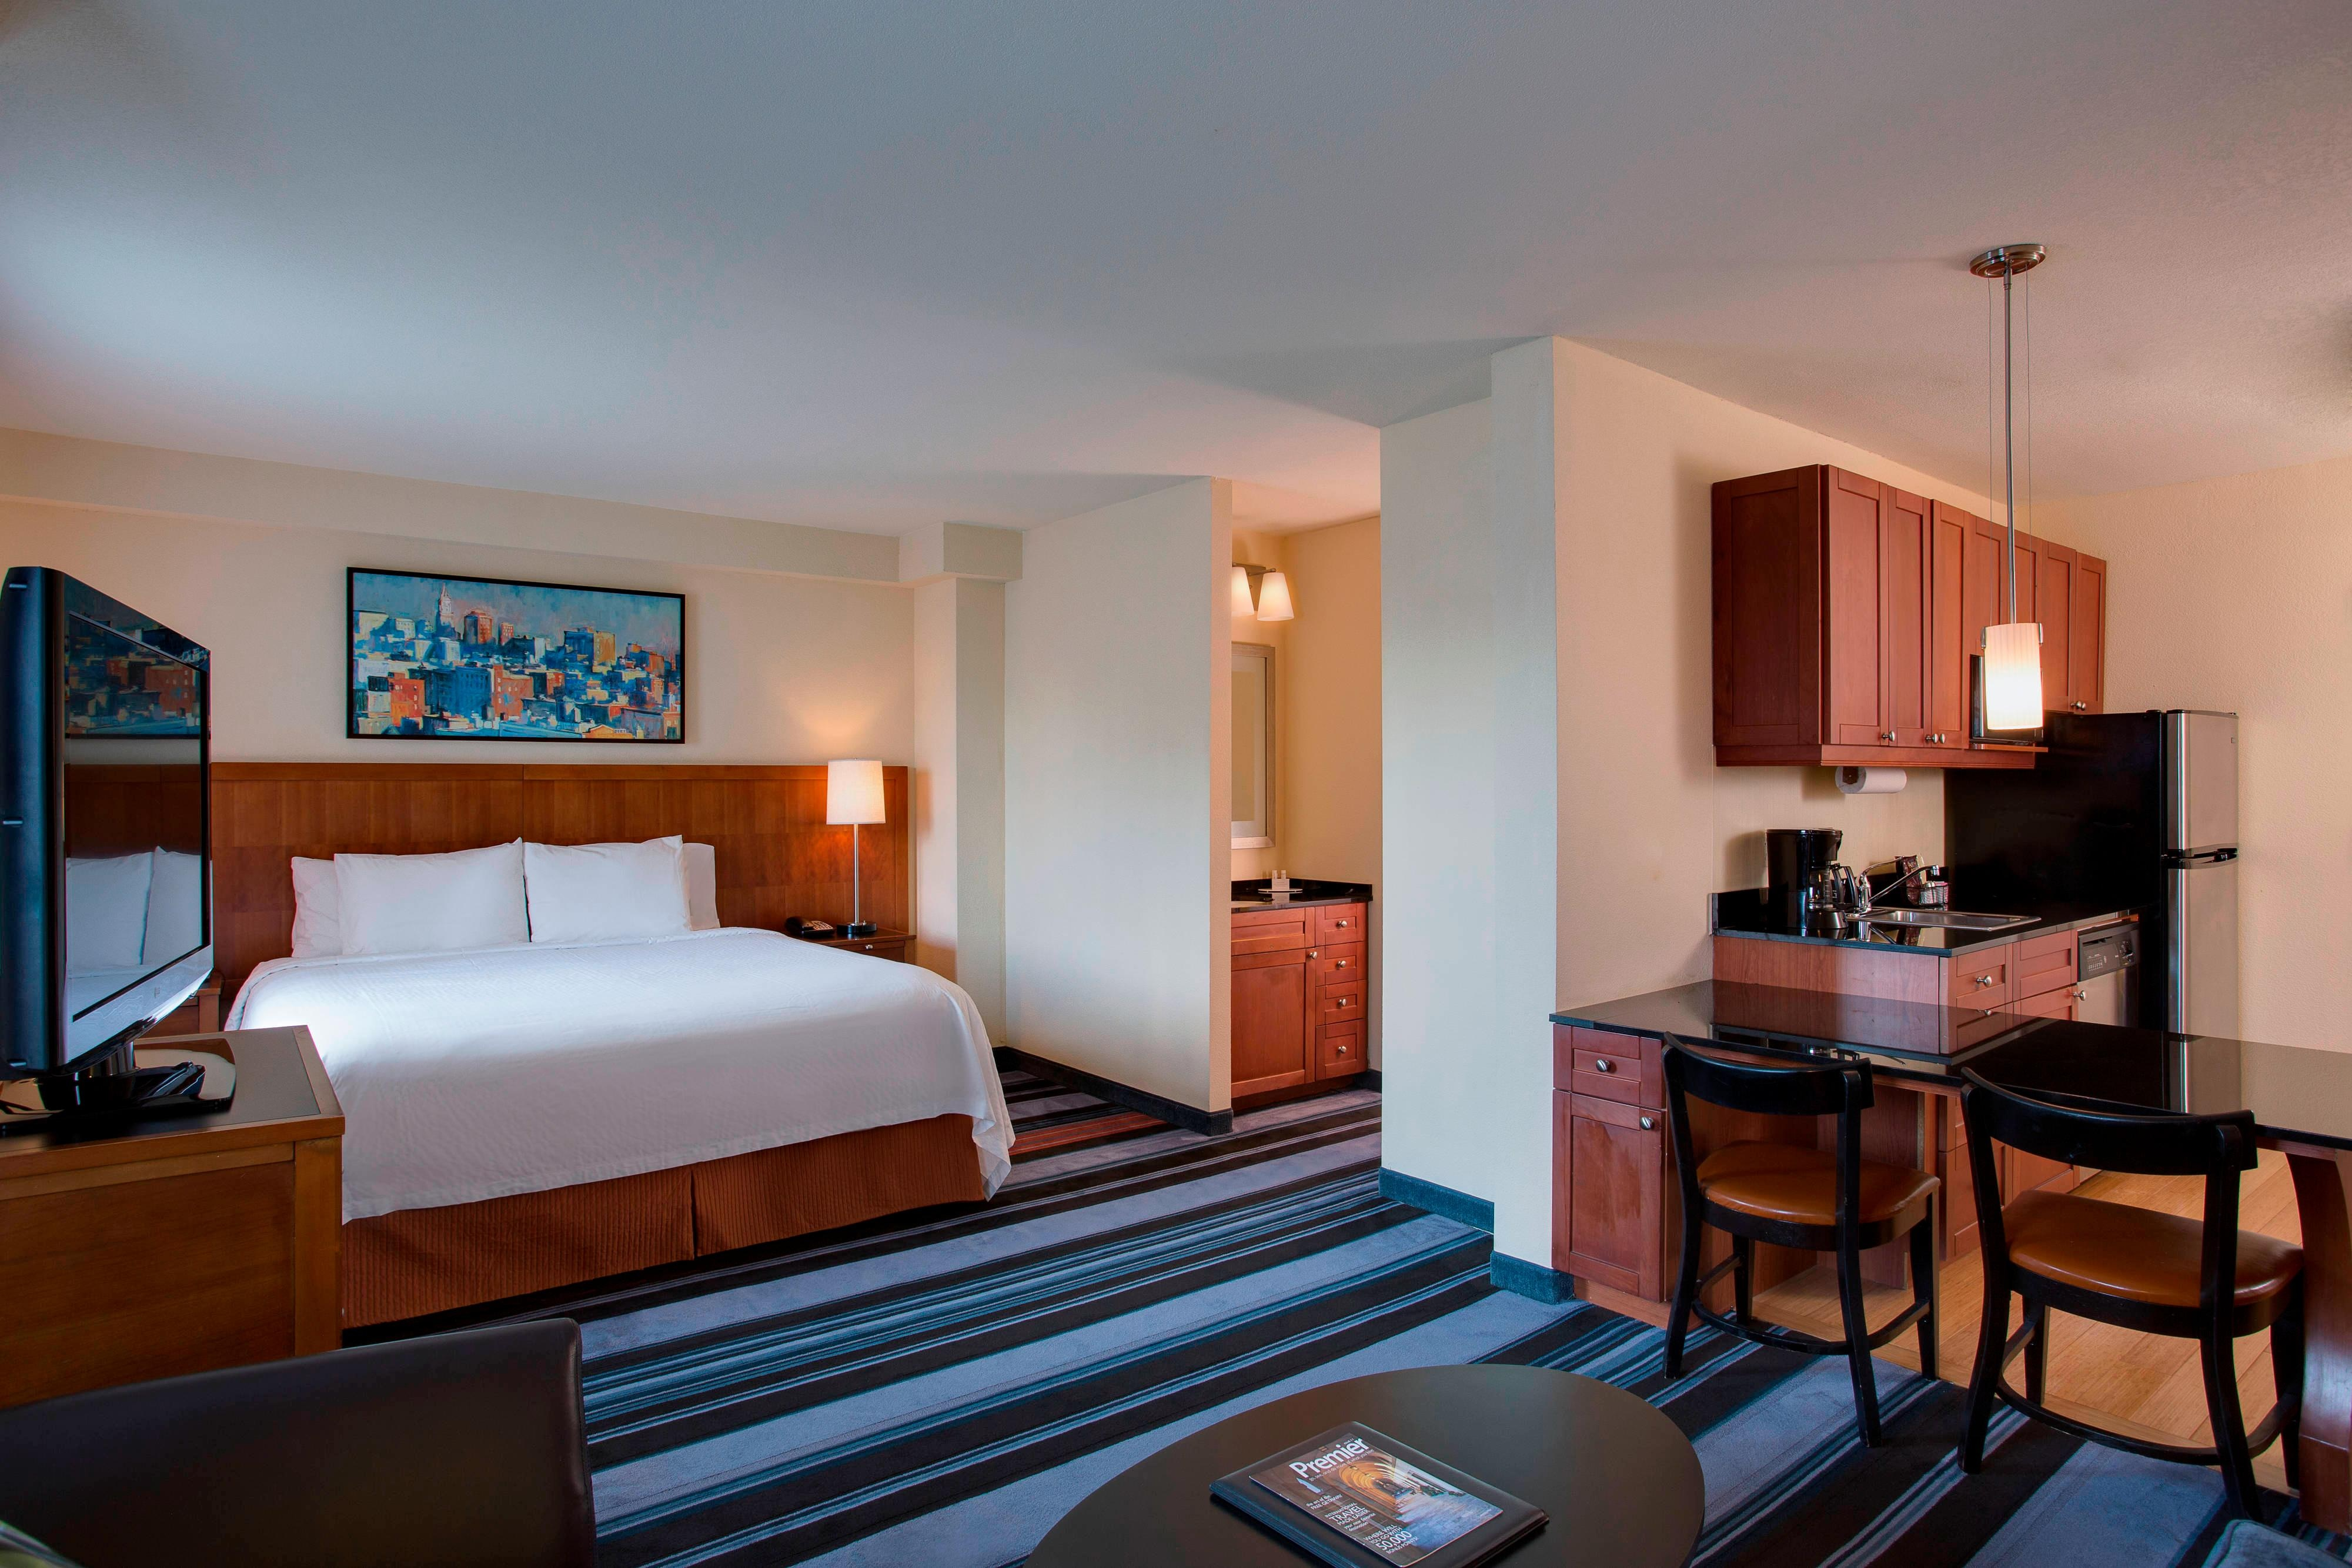 2 bedroom hotel suites nyc residence inn new york - Hotels that have 2 bedroom suites ...